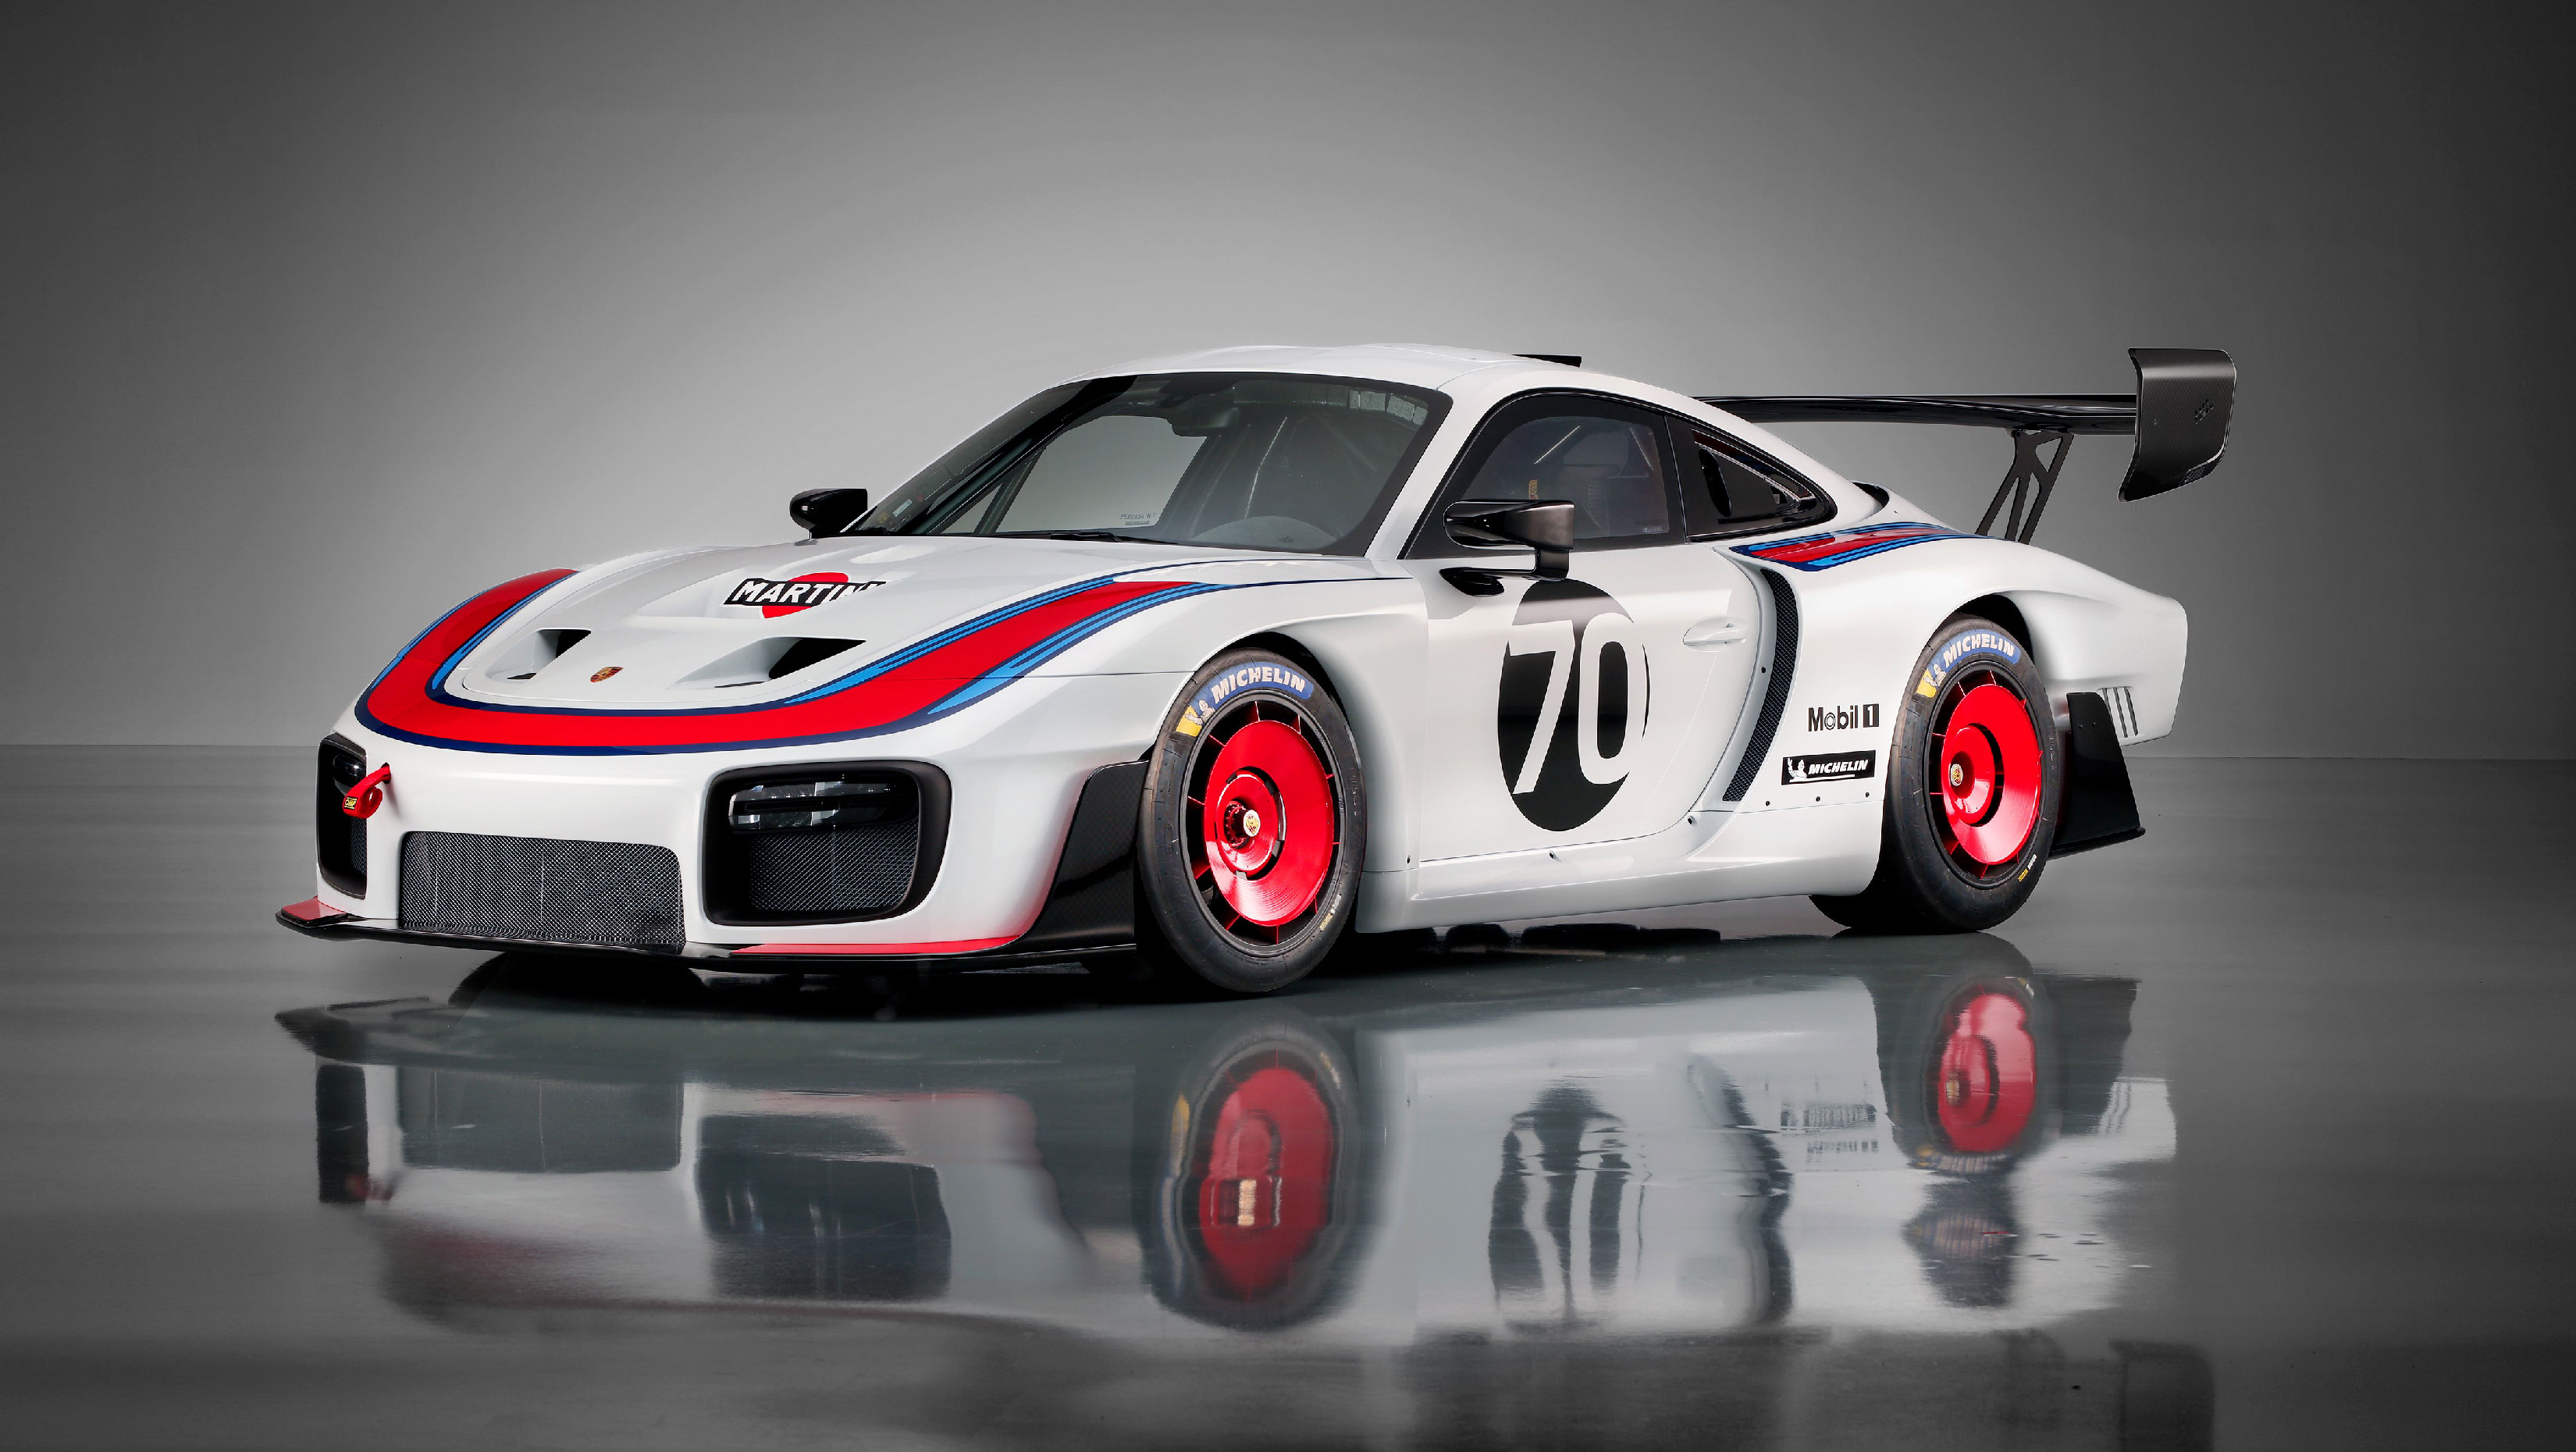 Celebrating its 70th anniversary, Porsche unveiled this new 935 as a 'birthday present to its fans'.